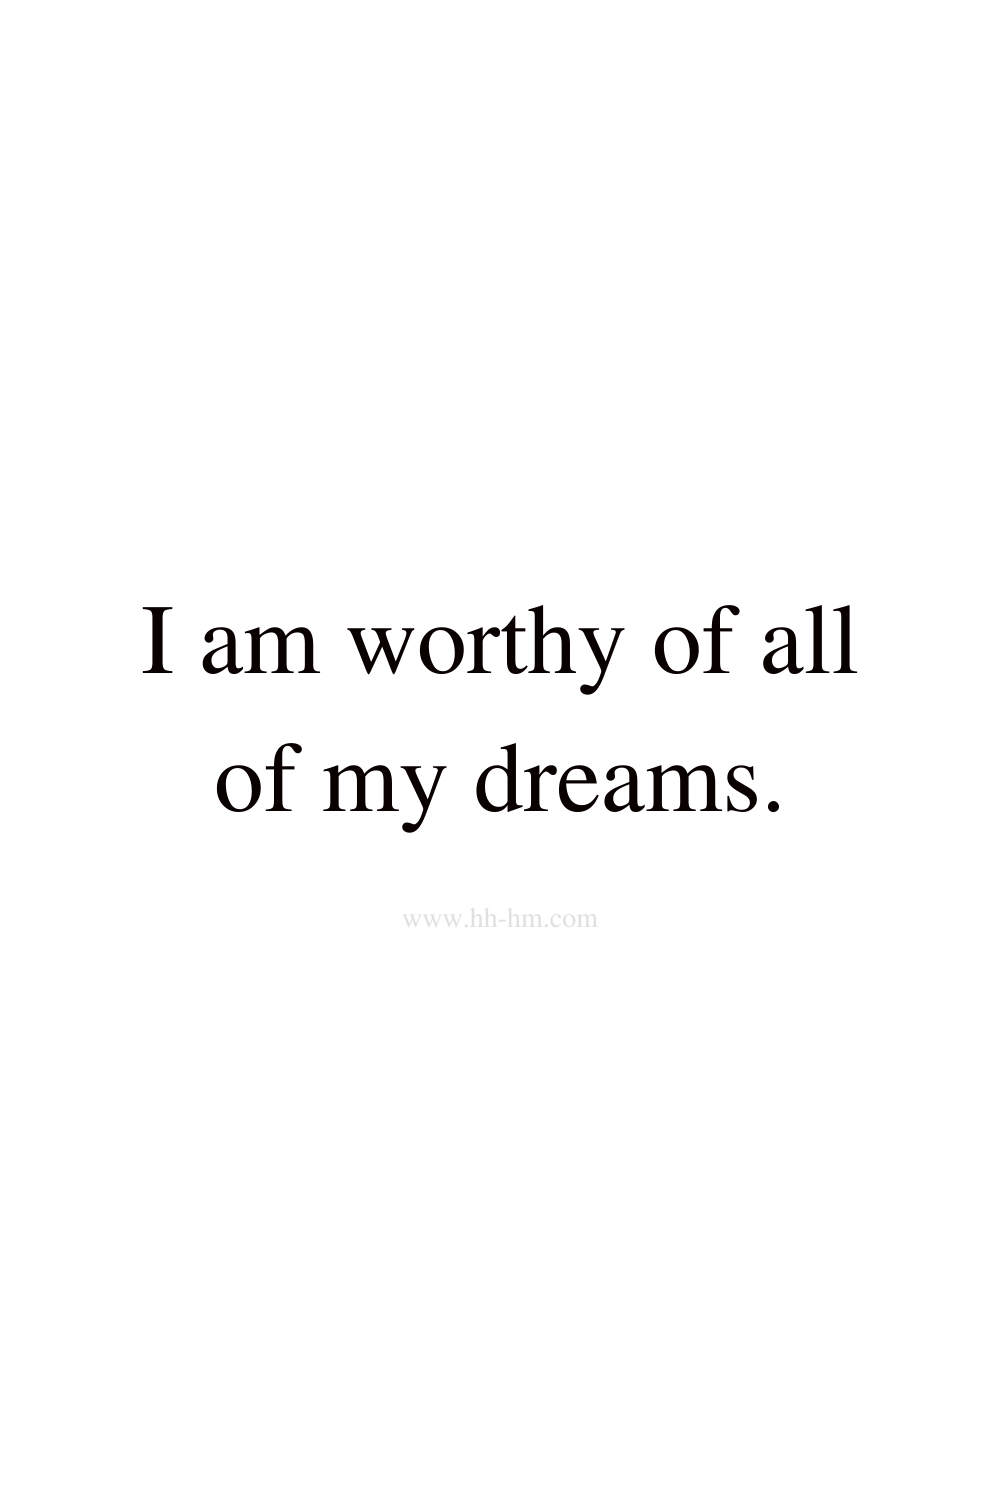 I am worthy of all my dreams - self love and self confidence morning affirmations